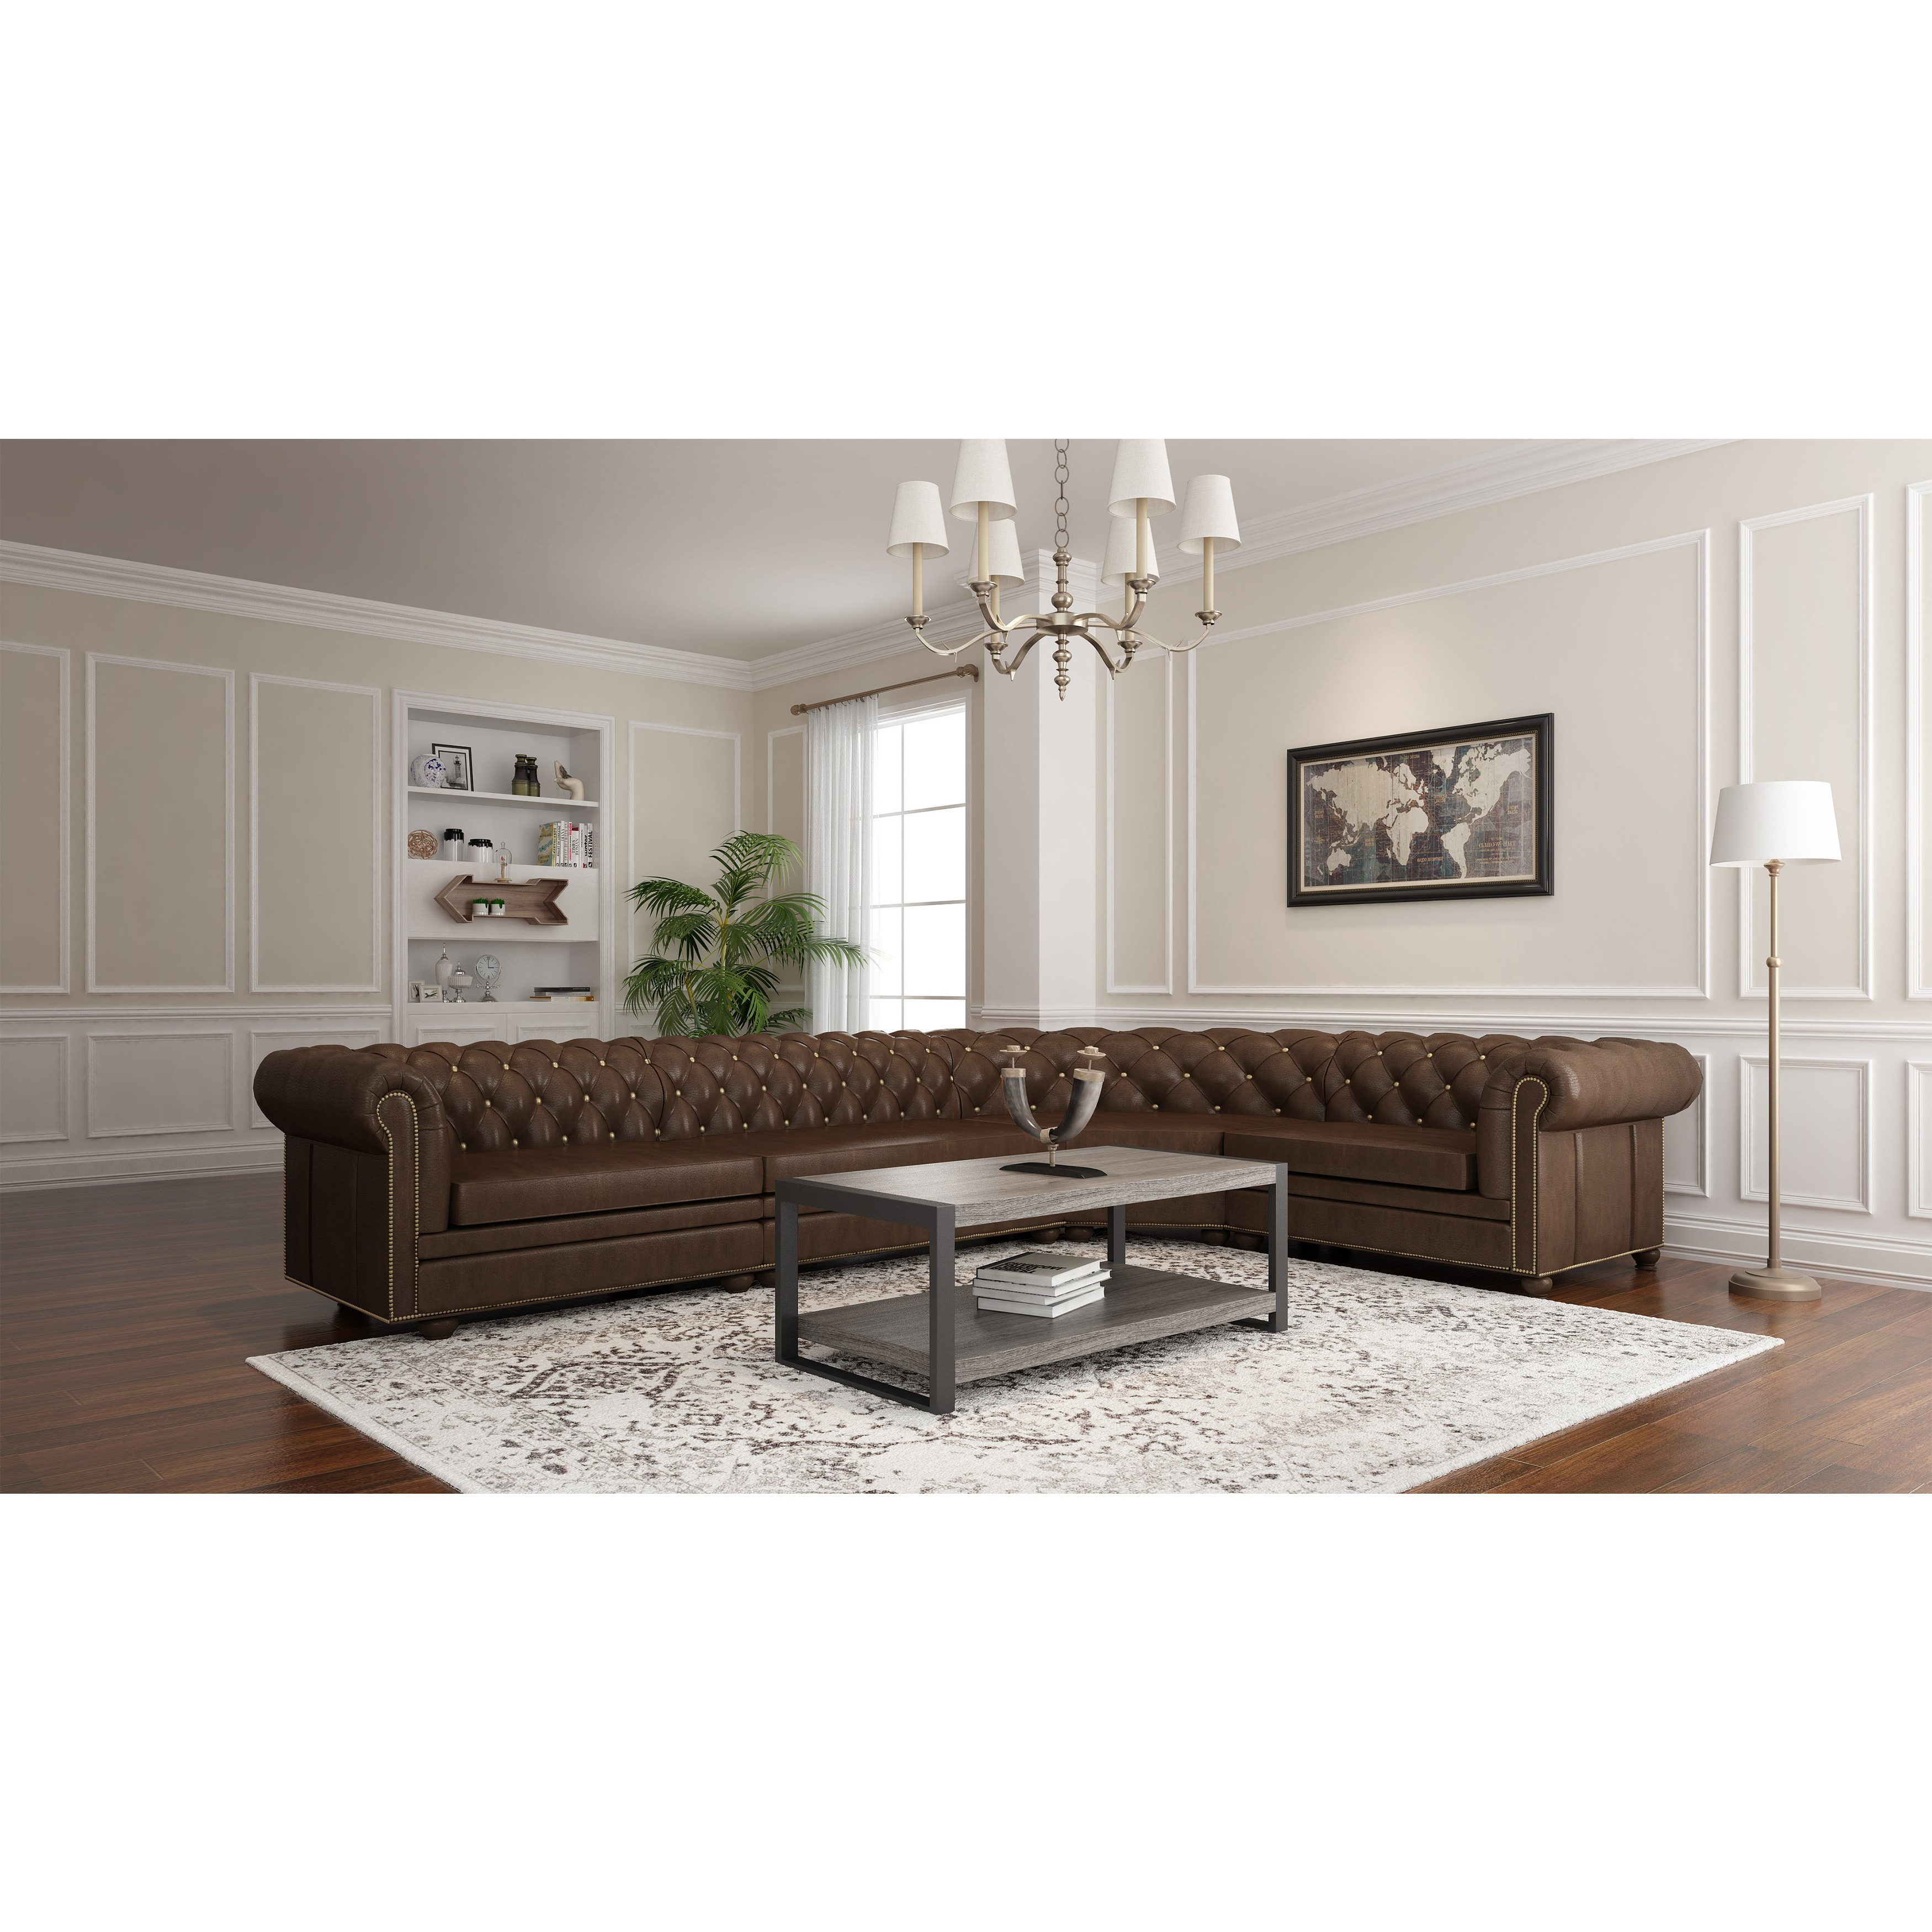 """Chevron 48"""" Coffee Tables With Regard To Well Known Shop Angelo:home 48"""" Coffee Table – 48 X 24 X 18h – On Sale – Free (View 10 of 19)"""